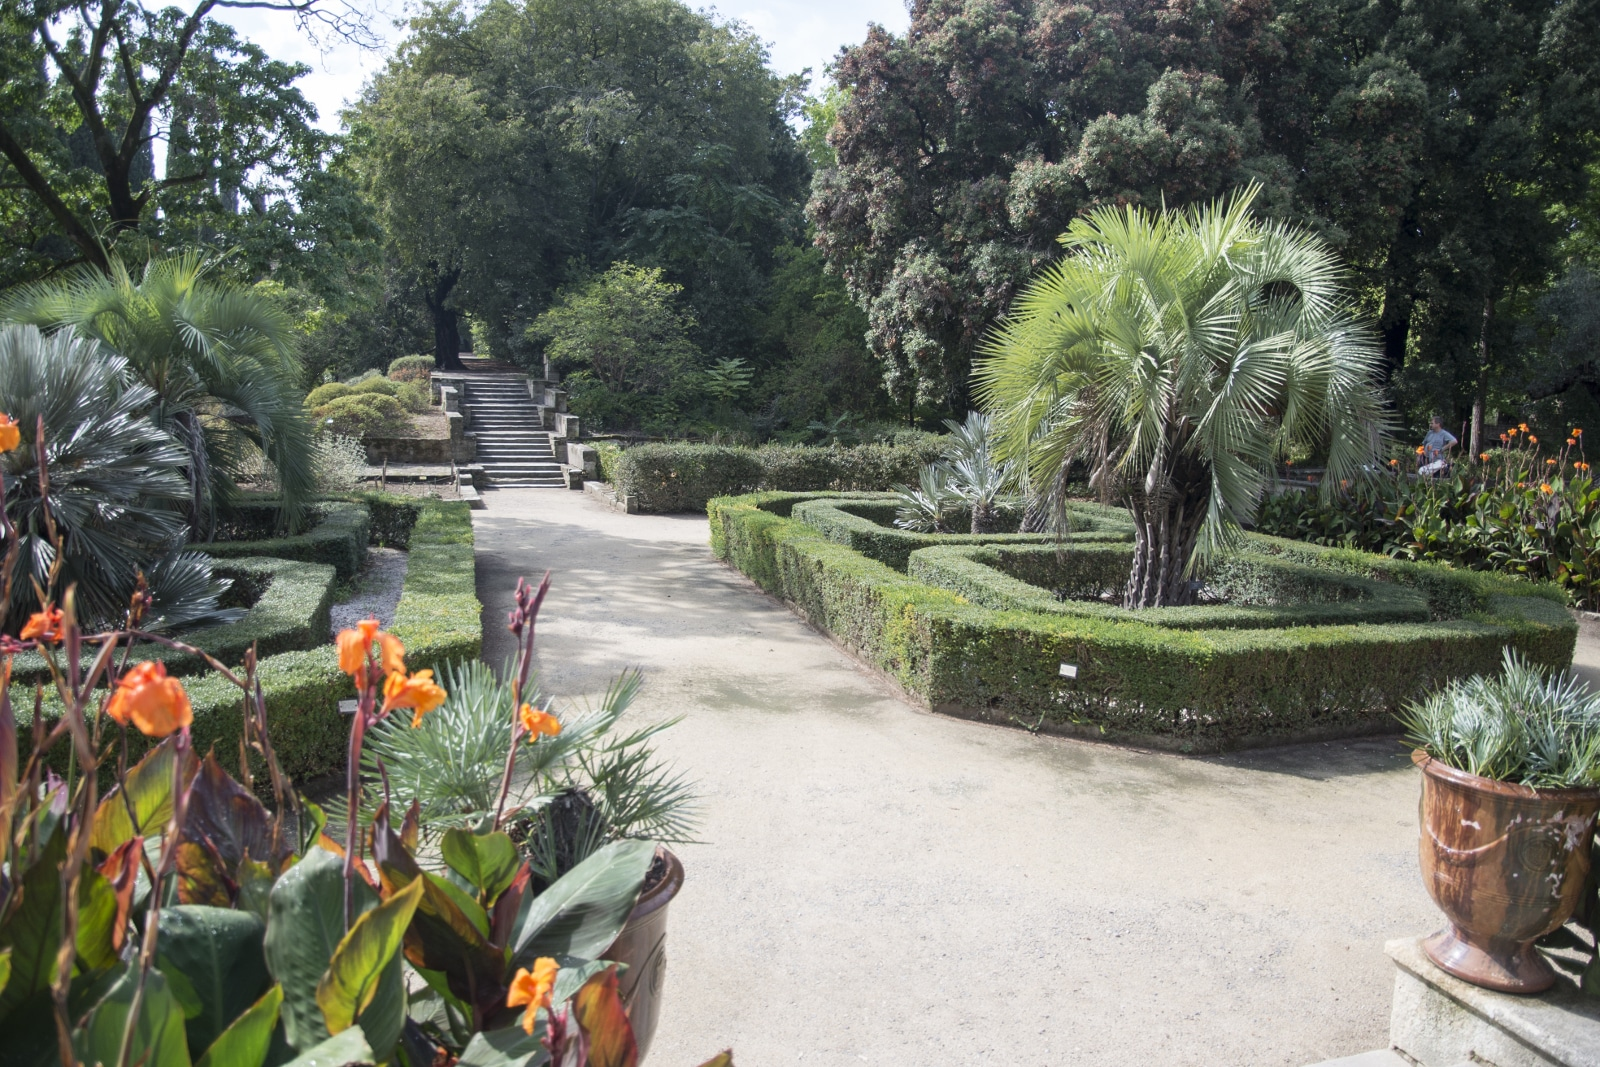 Programmation estivale du jardin des plantes universit for Jardin du michel 2015 programmation